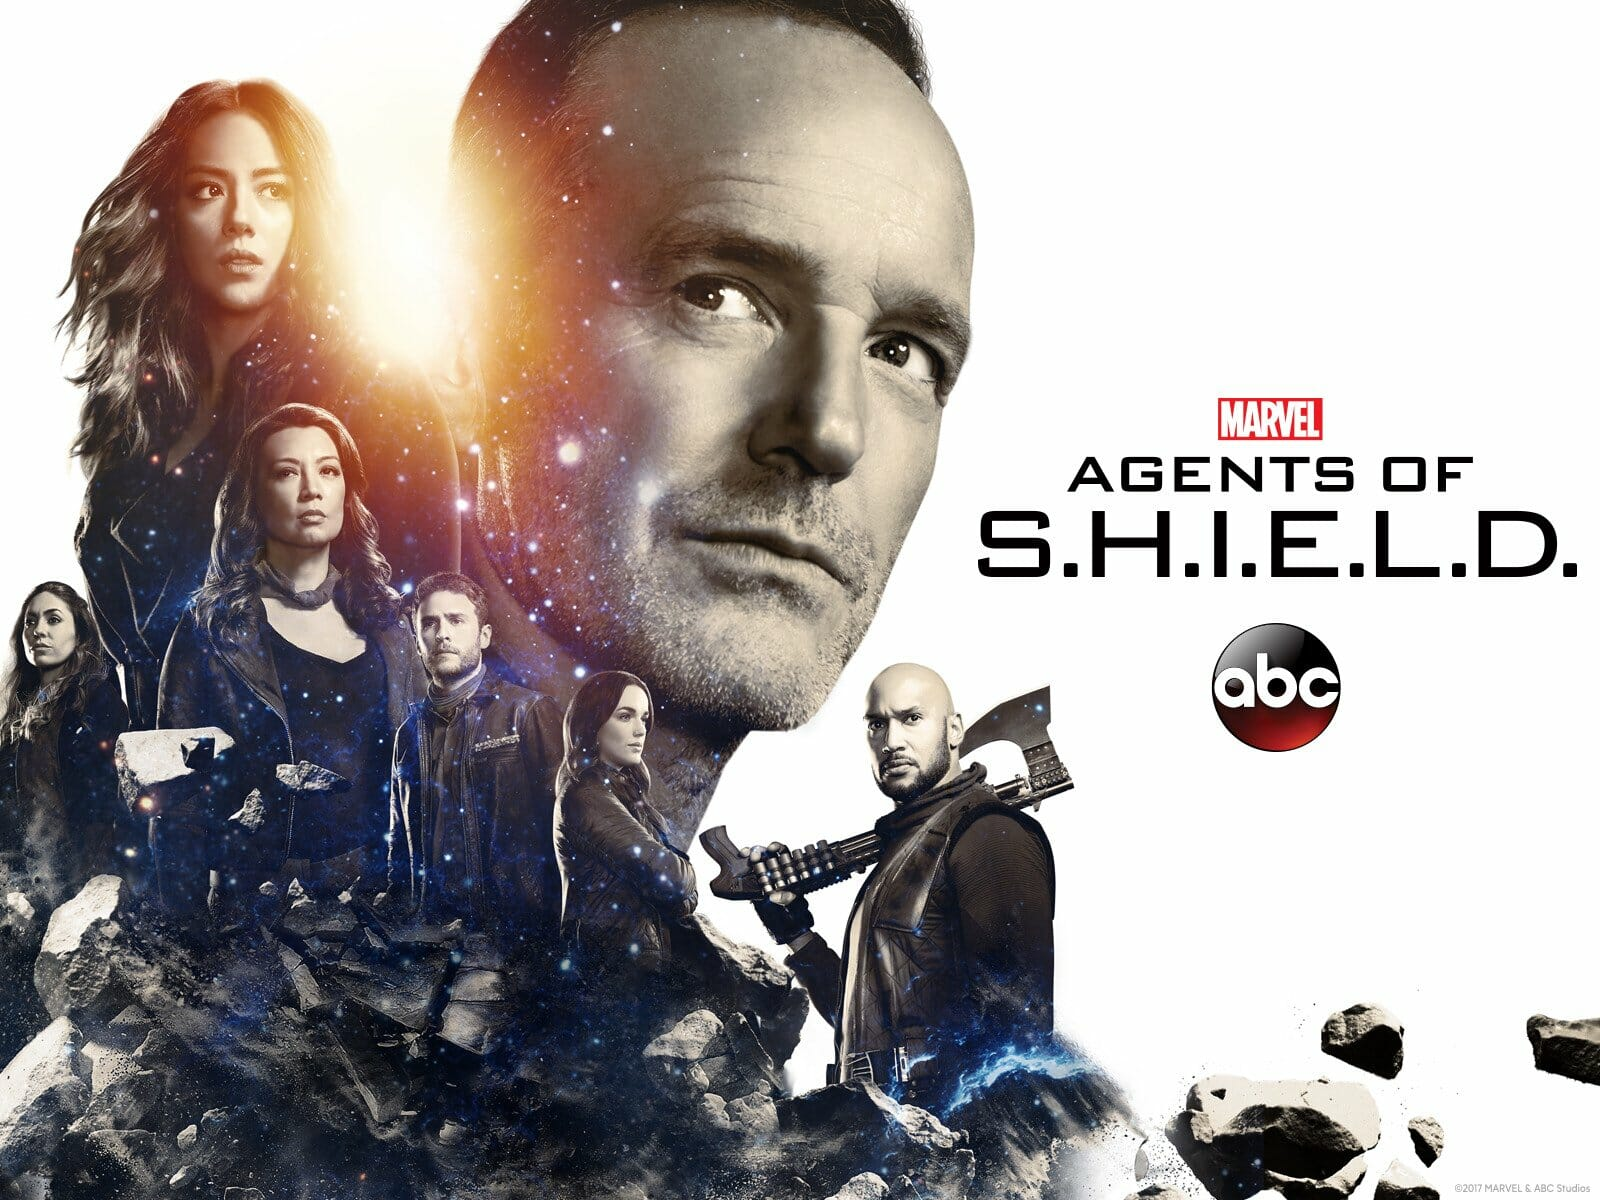 watch agents of shield season 6 online free on ABC